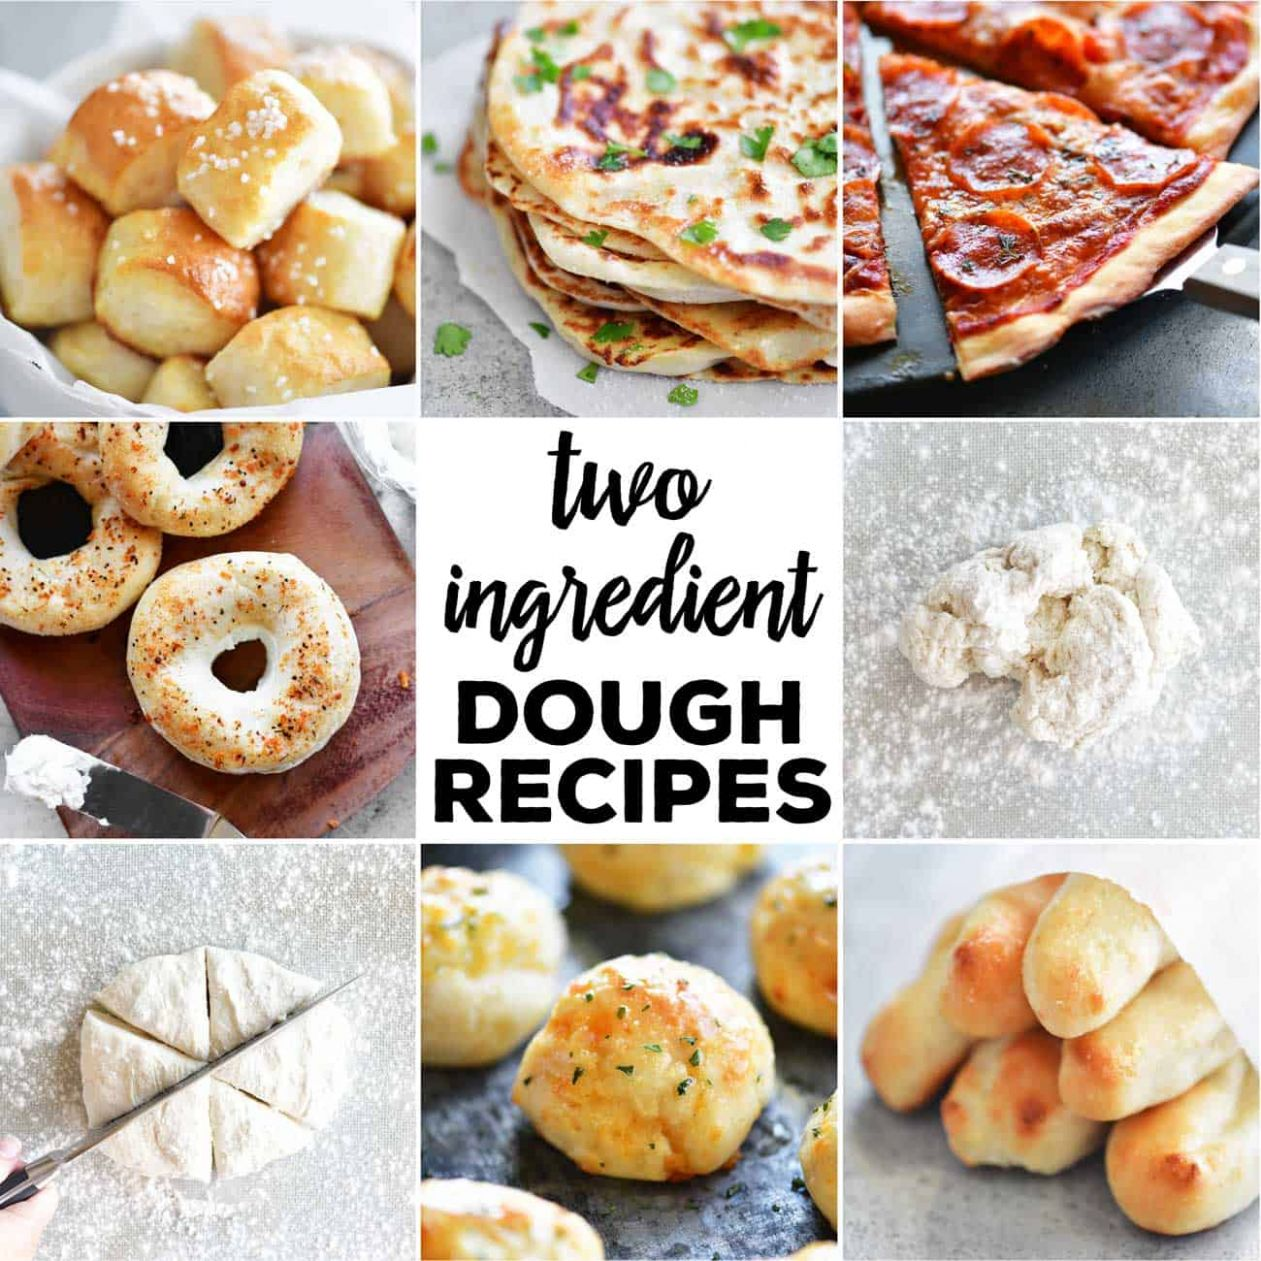 Two Ingredient Dough Recipes - Simple Recipes And Ingredients